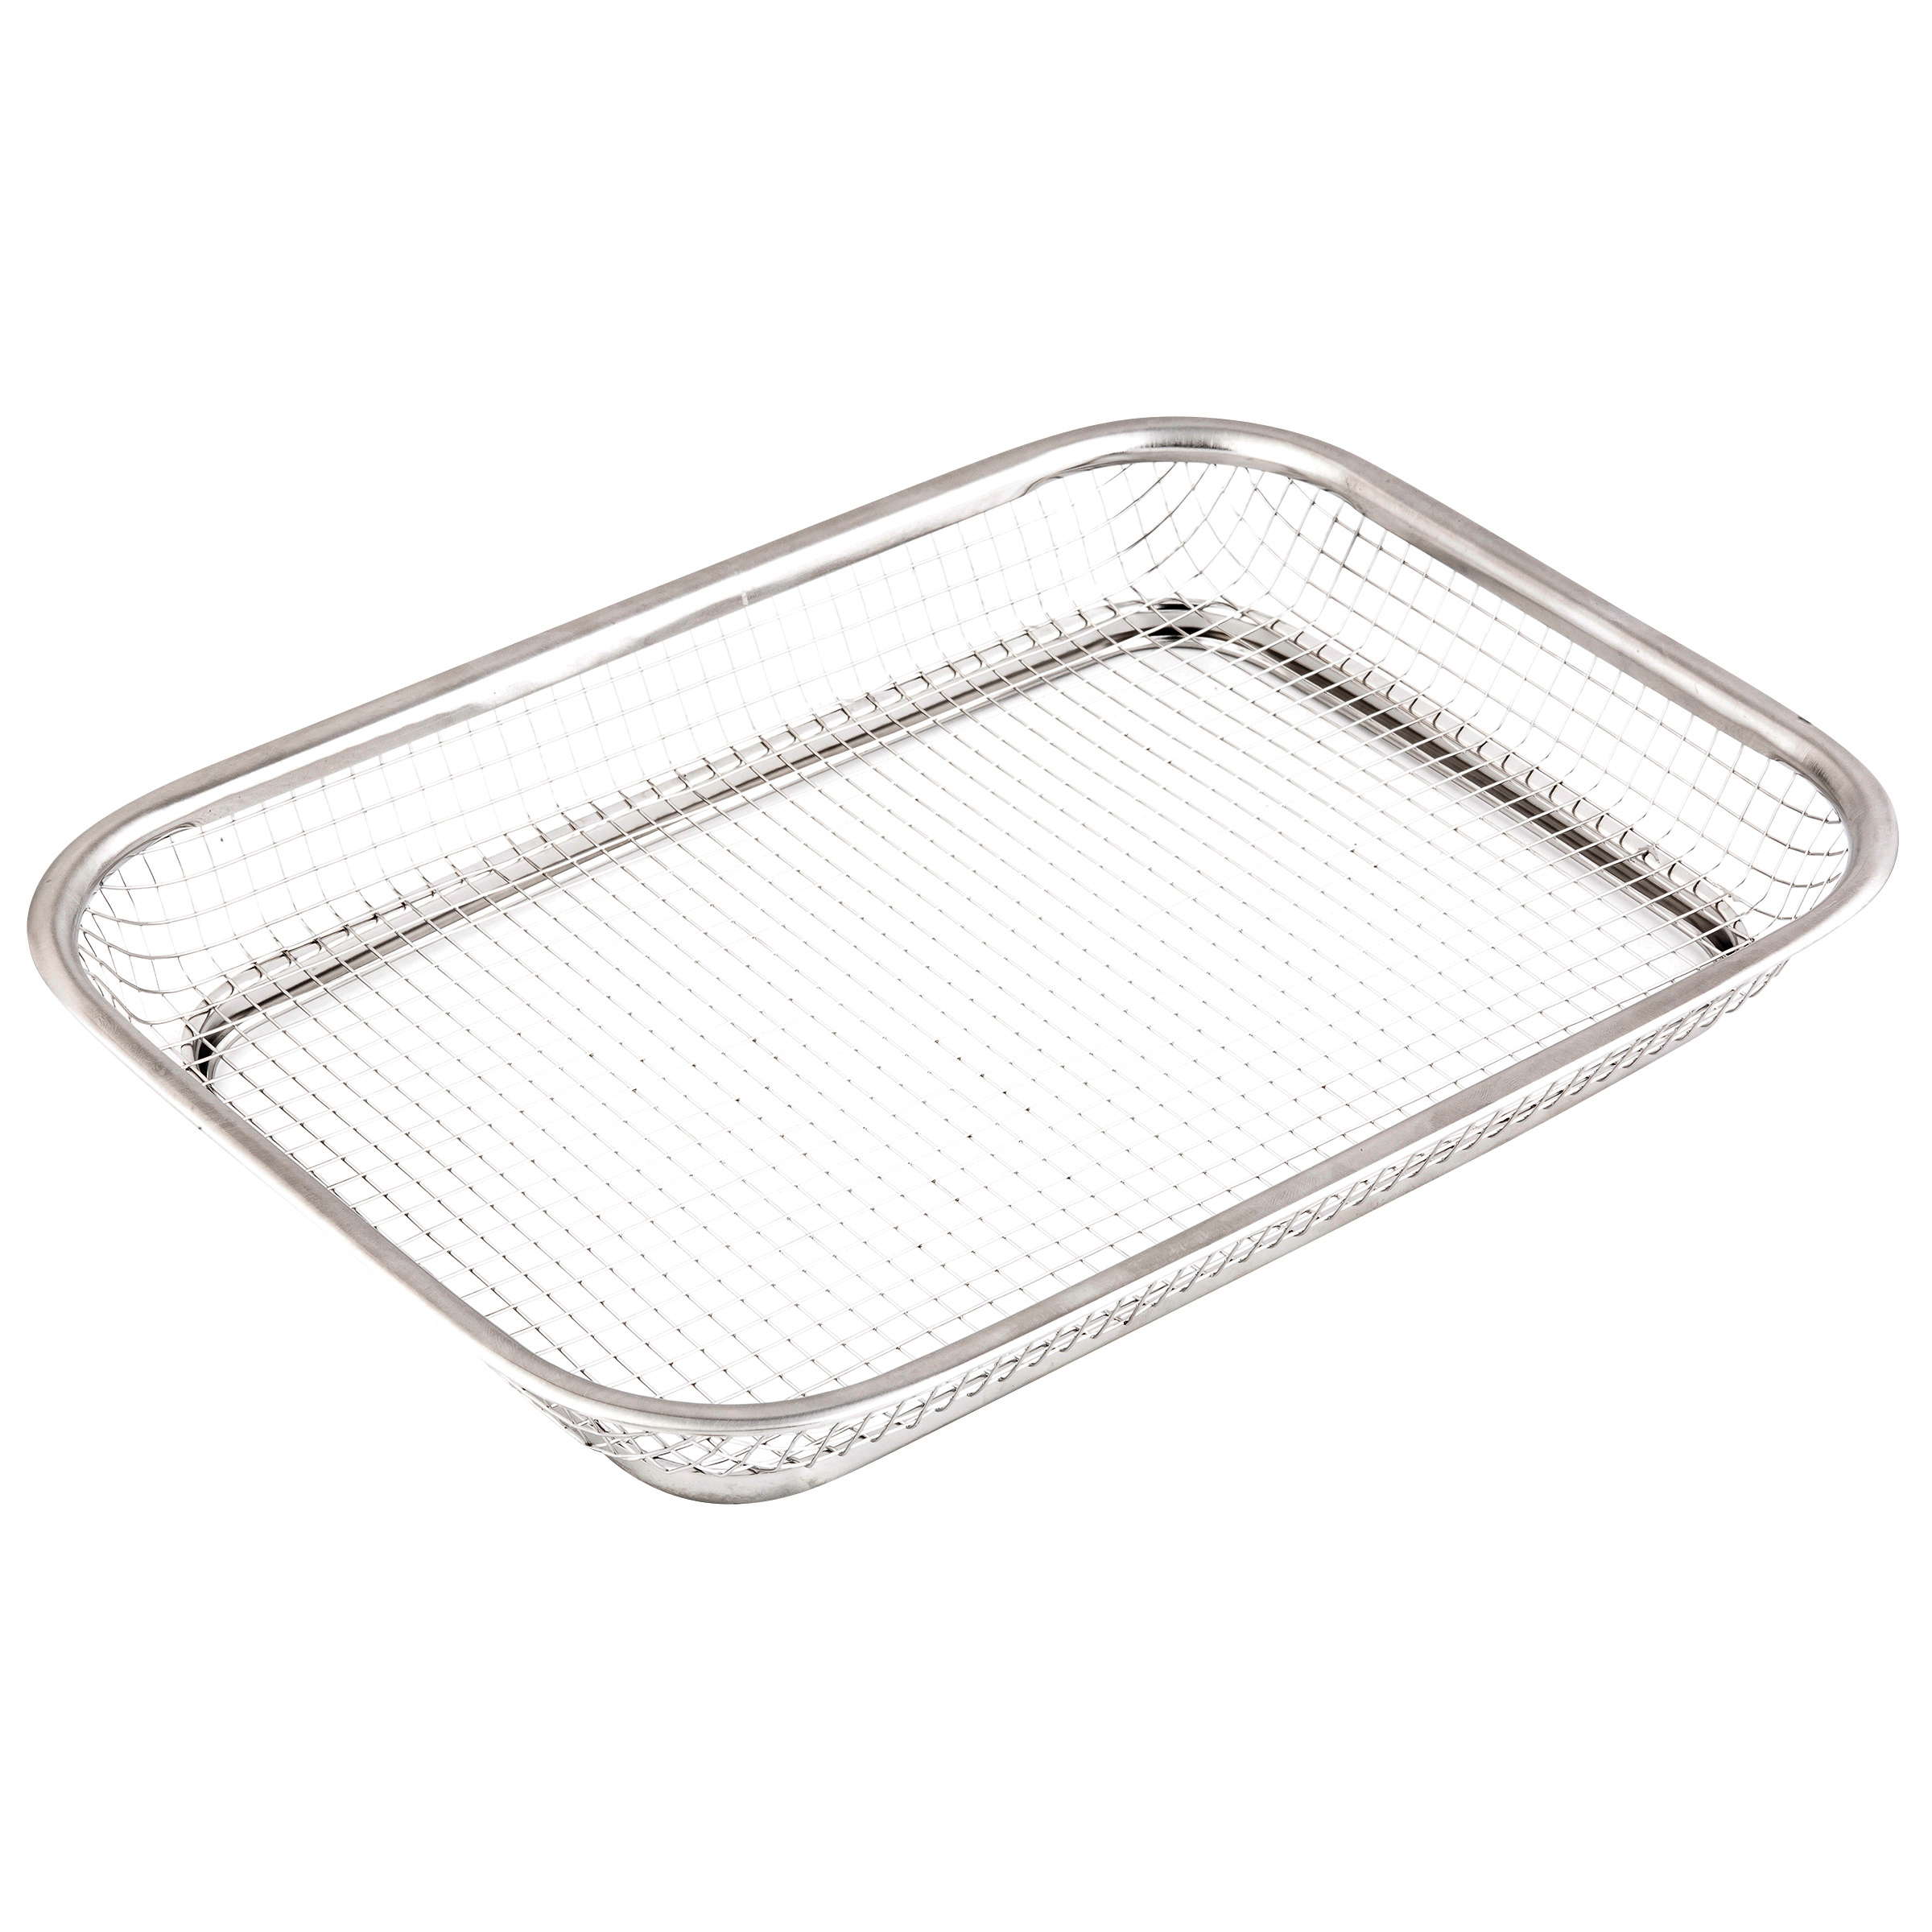 TableCraft Products 123476 basket, tabletop, metal